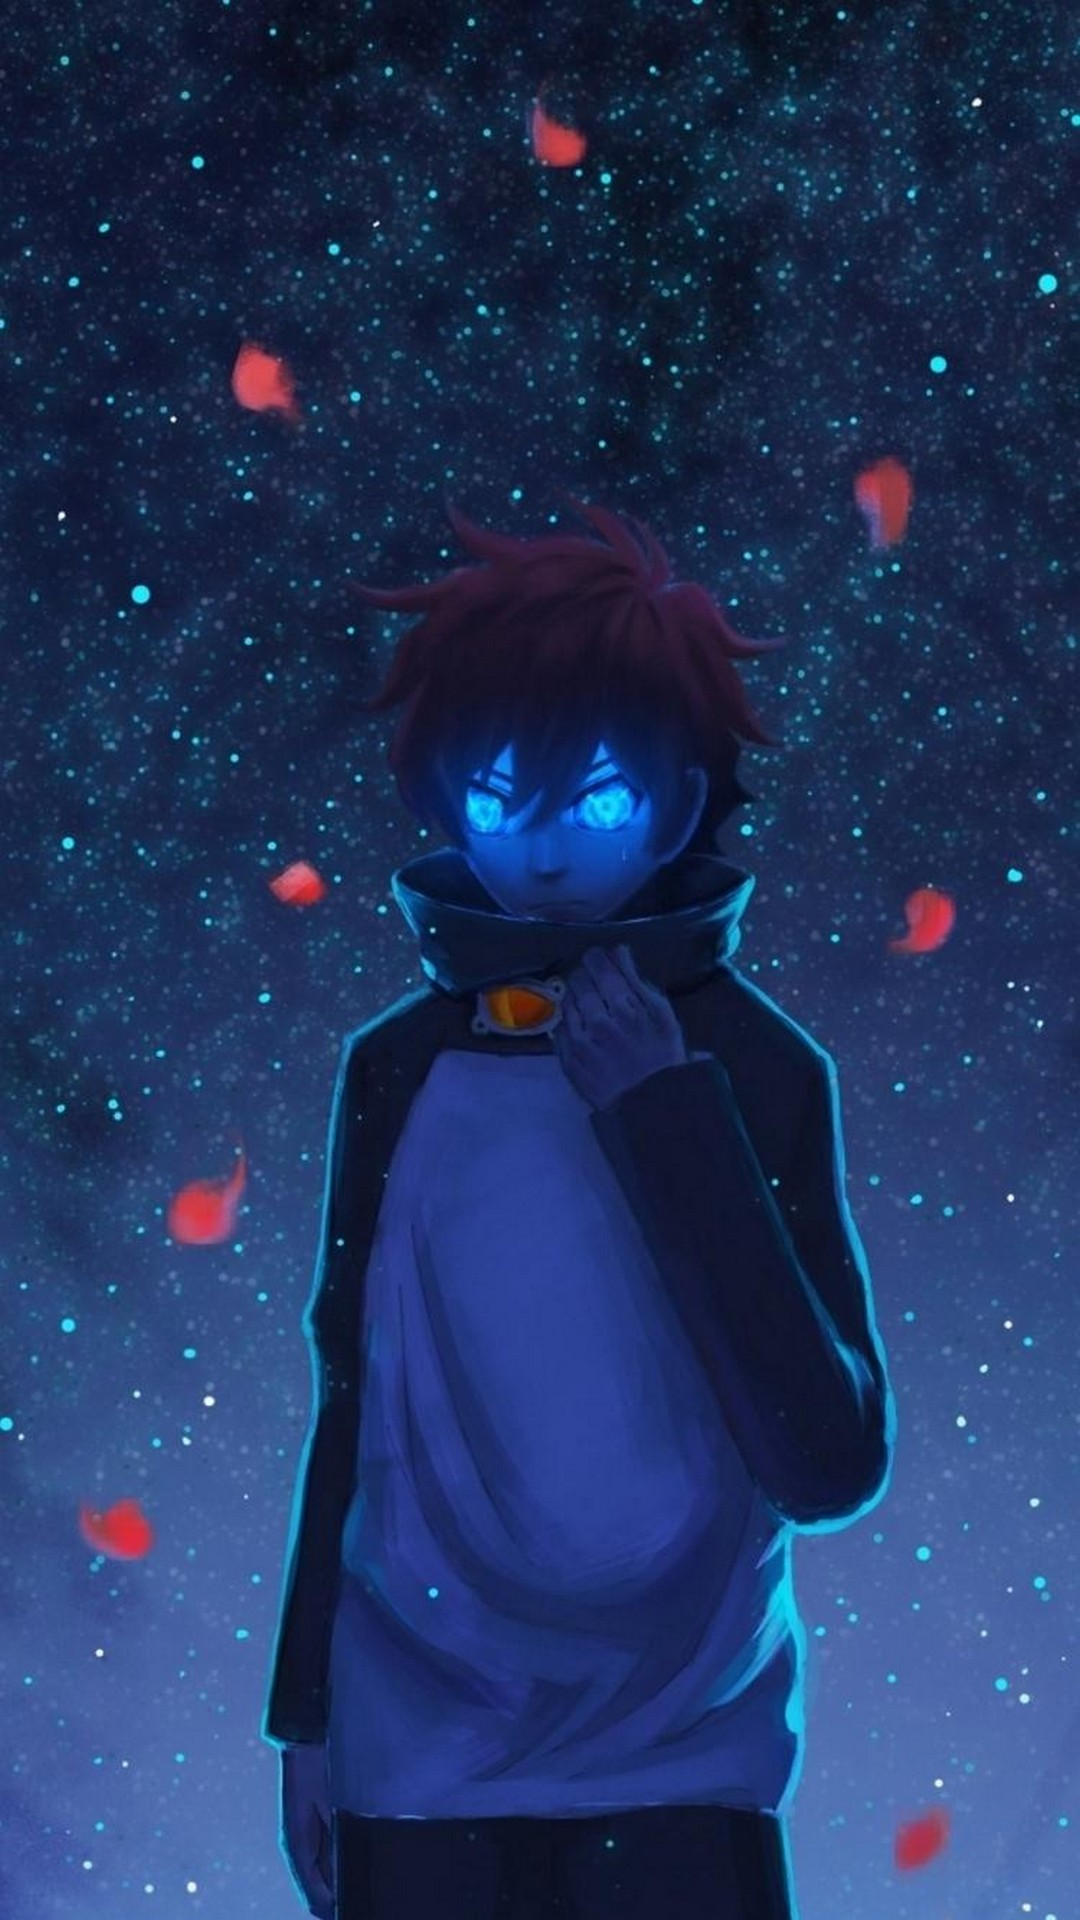 Cool Anime Backgrounds For Android 2021 Android Wallpapers